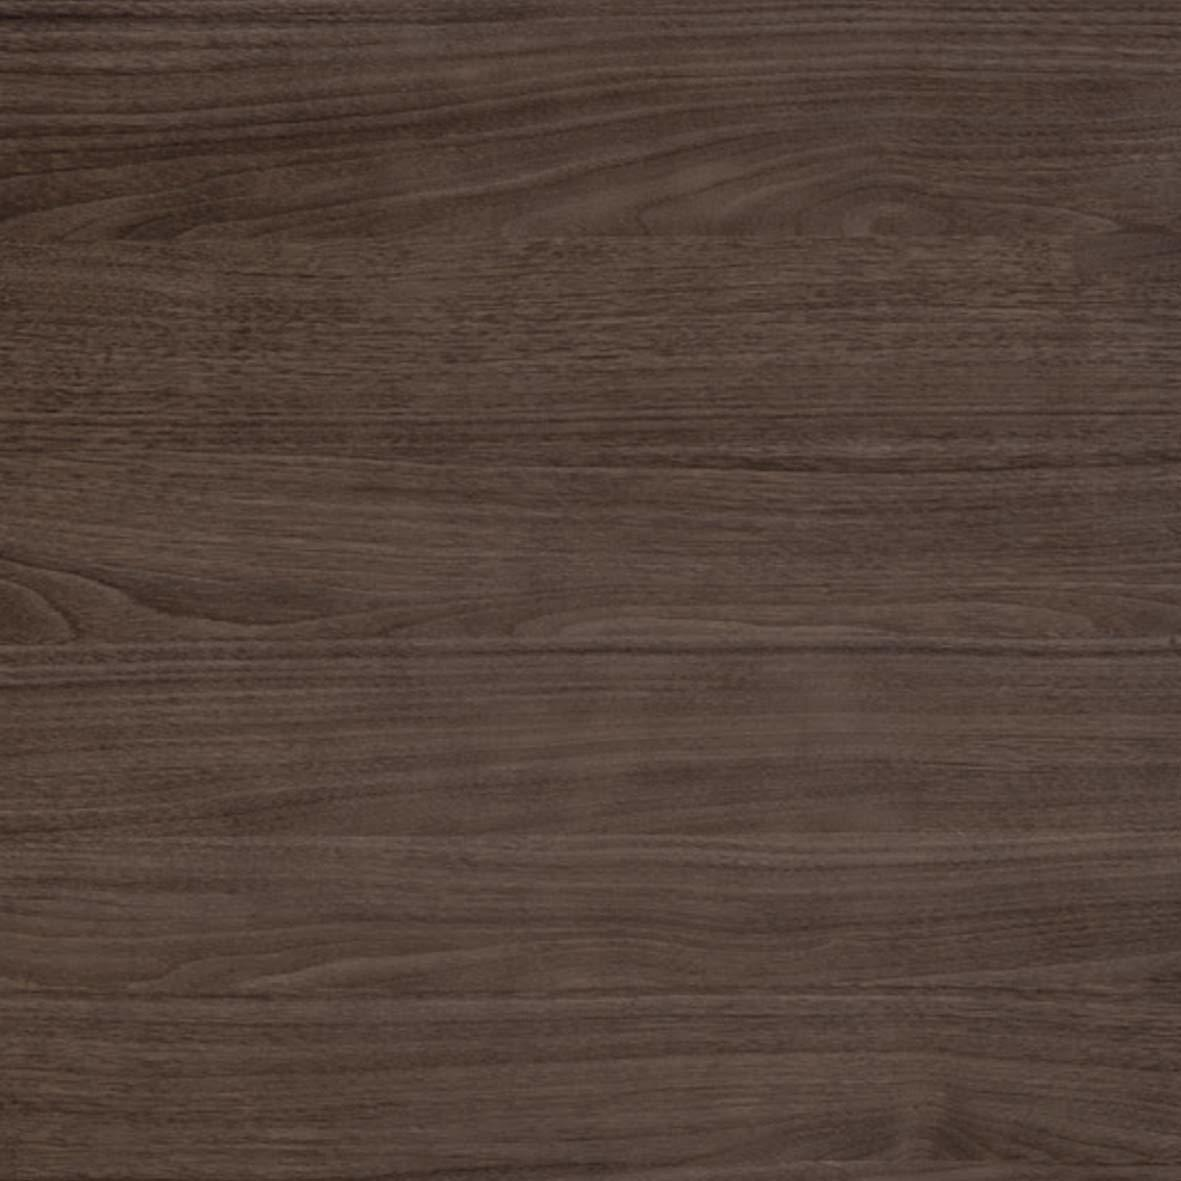 NS Dark Canaletto Walnut